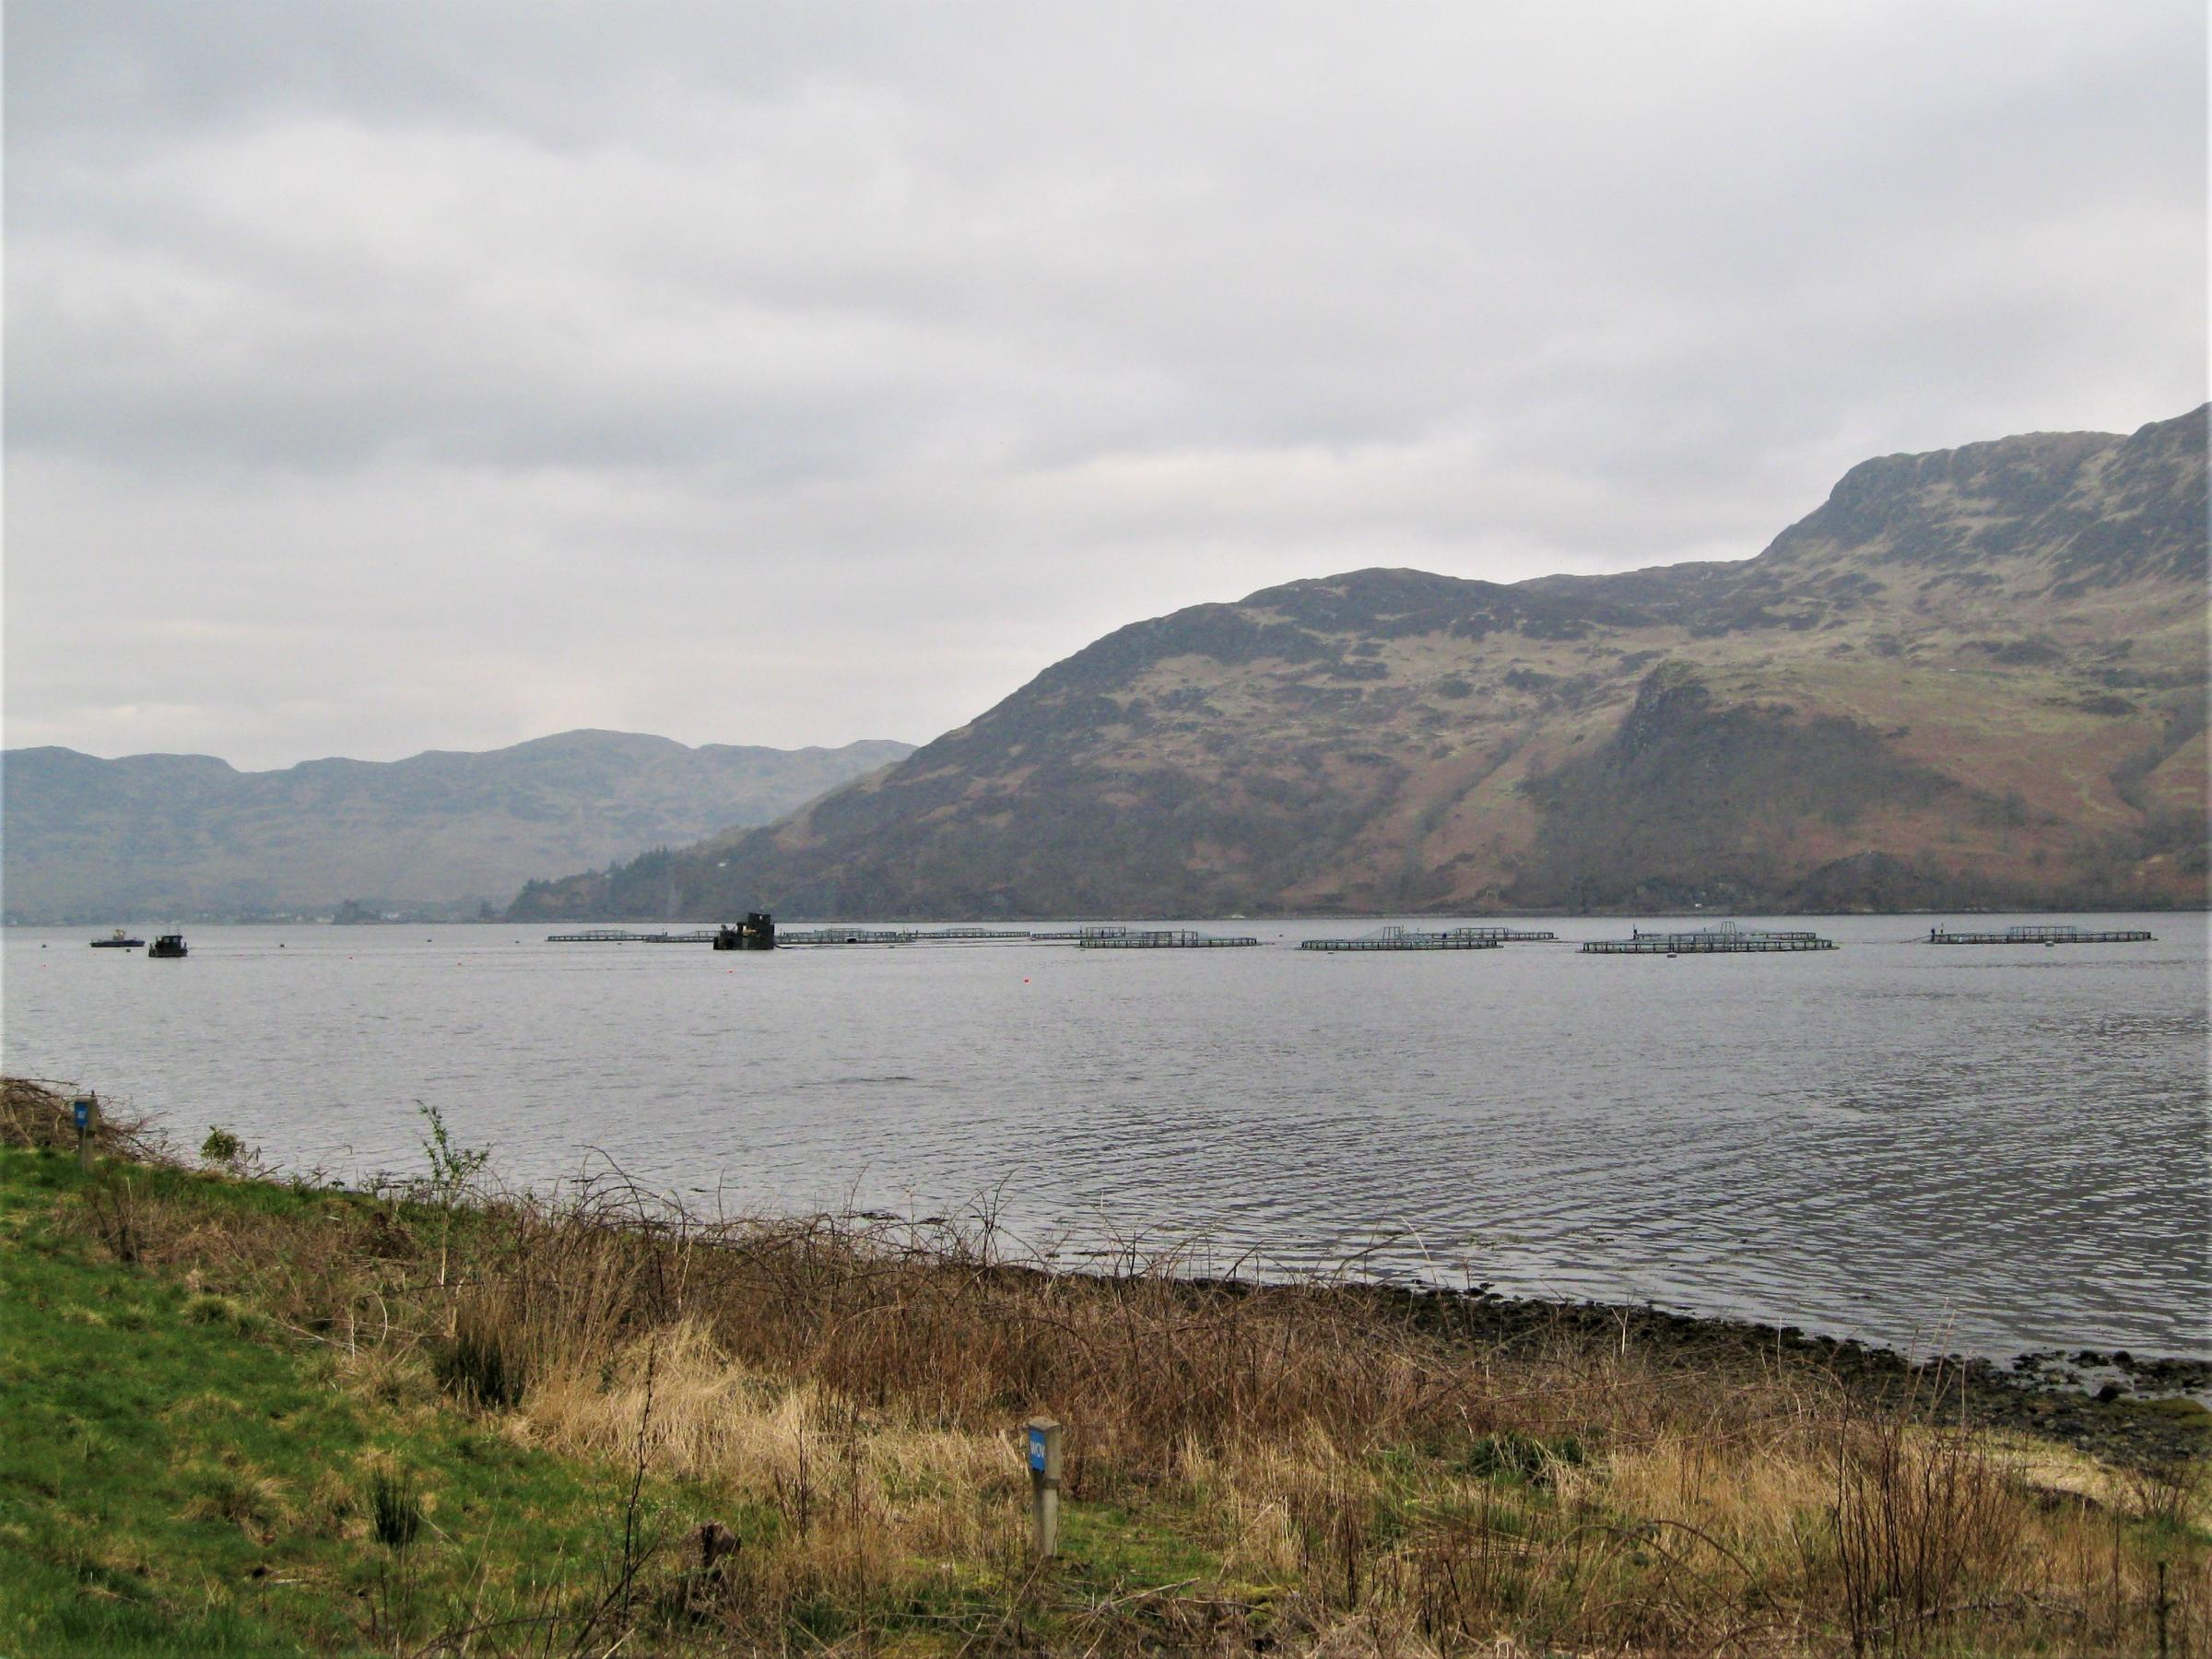 Highland salmon farms to be closed as owner aims to reduce environmental footprint